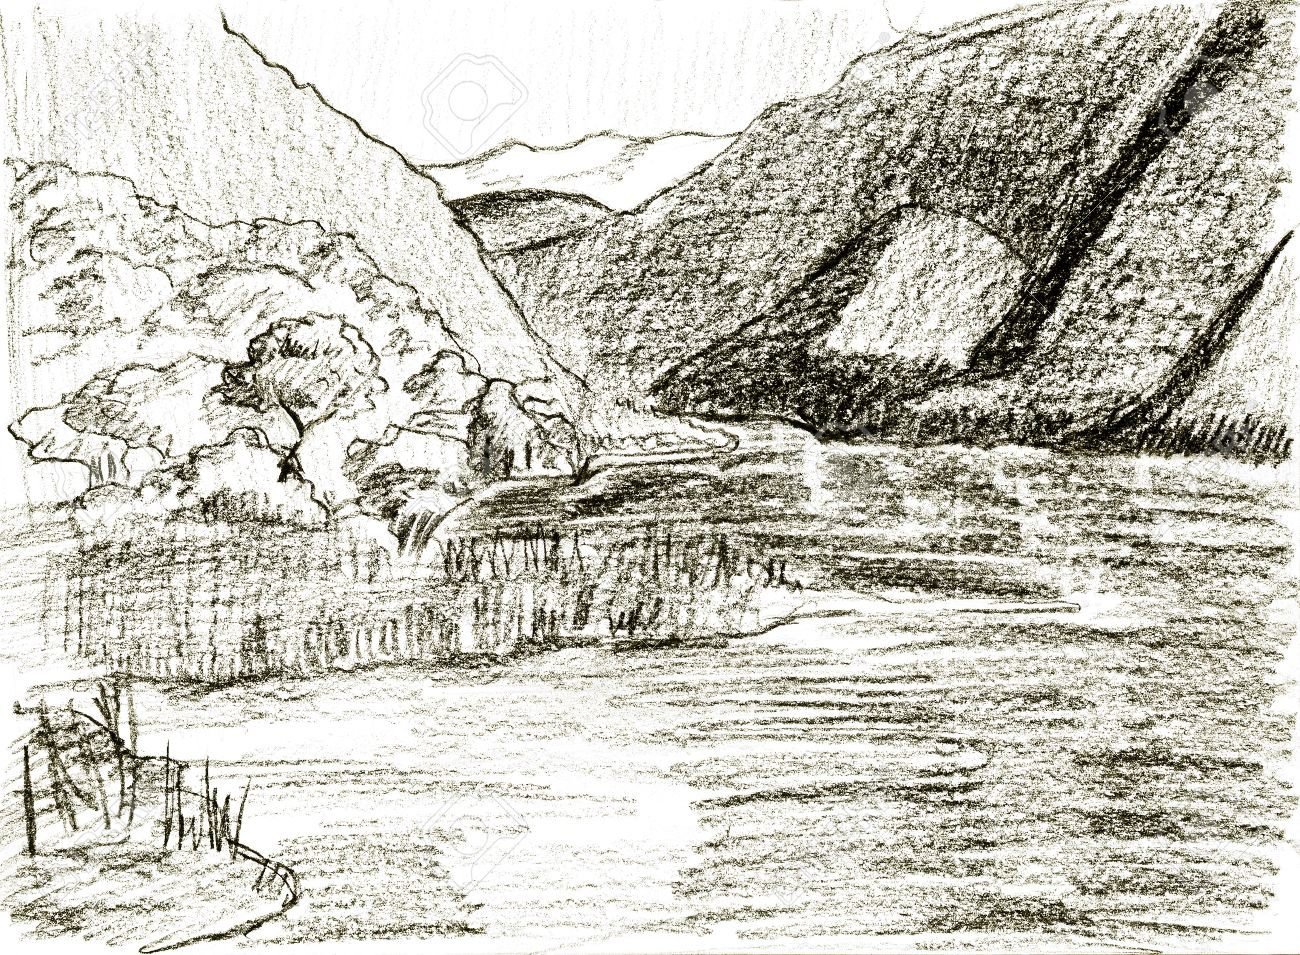 1300x955 Pencil Sketch Of Mountain Landscape Stock Photo, Picture